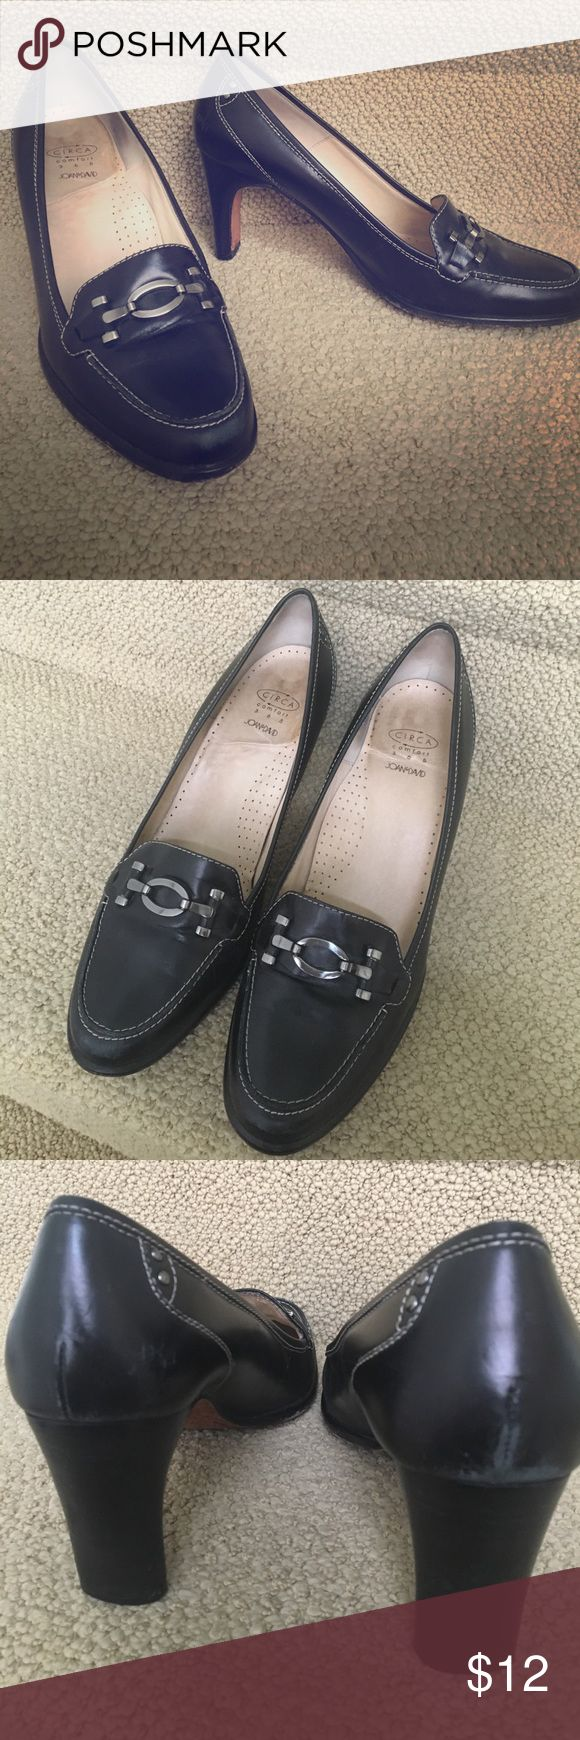 JOAN & DAVID Pumps 👠 Black Joan & David Circa work pumps that are very comfortable and well made. They may need a quick heel replacement but then they will serve you well. A few rubs and scuffs as seen in photos. Size 9M Joan & David Shoes Heels